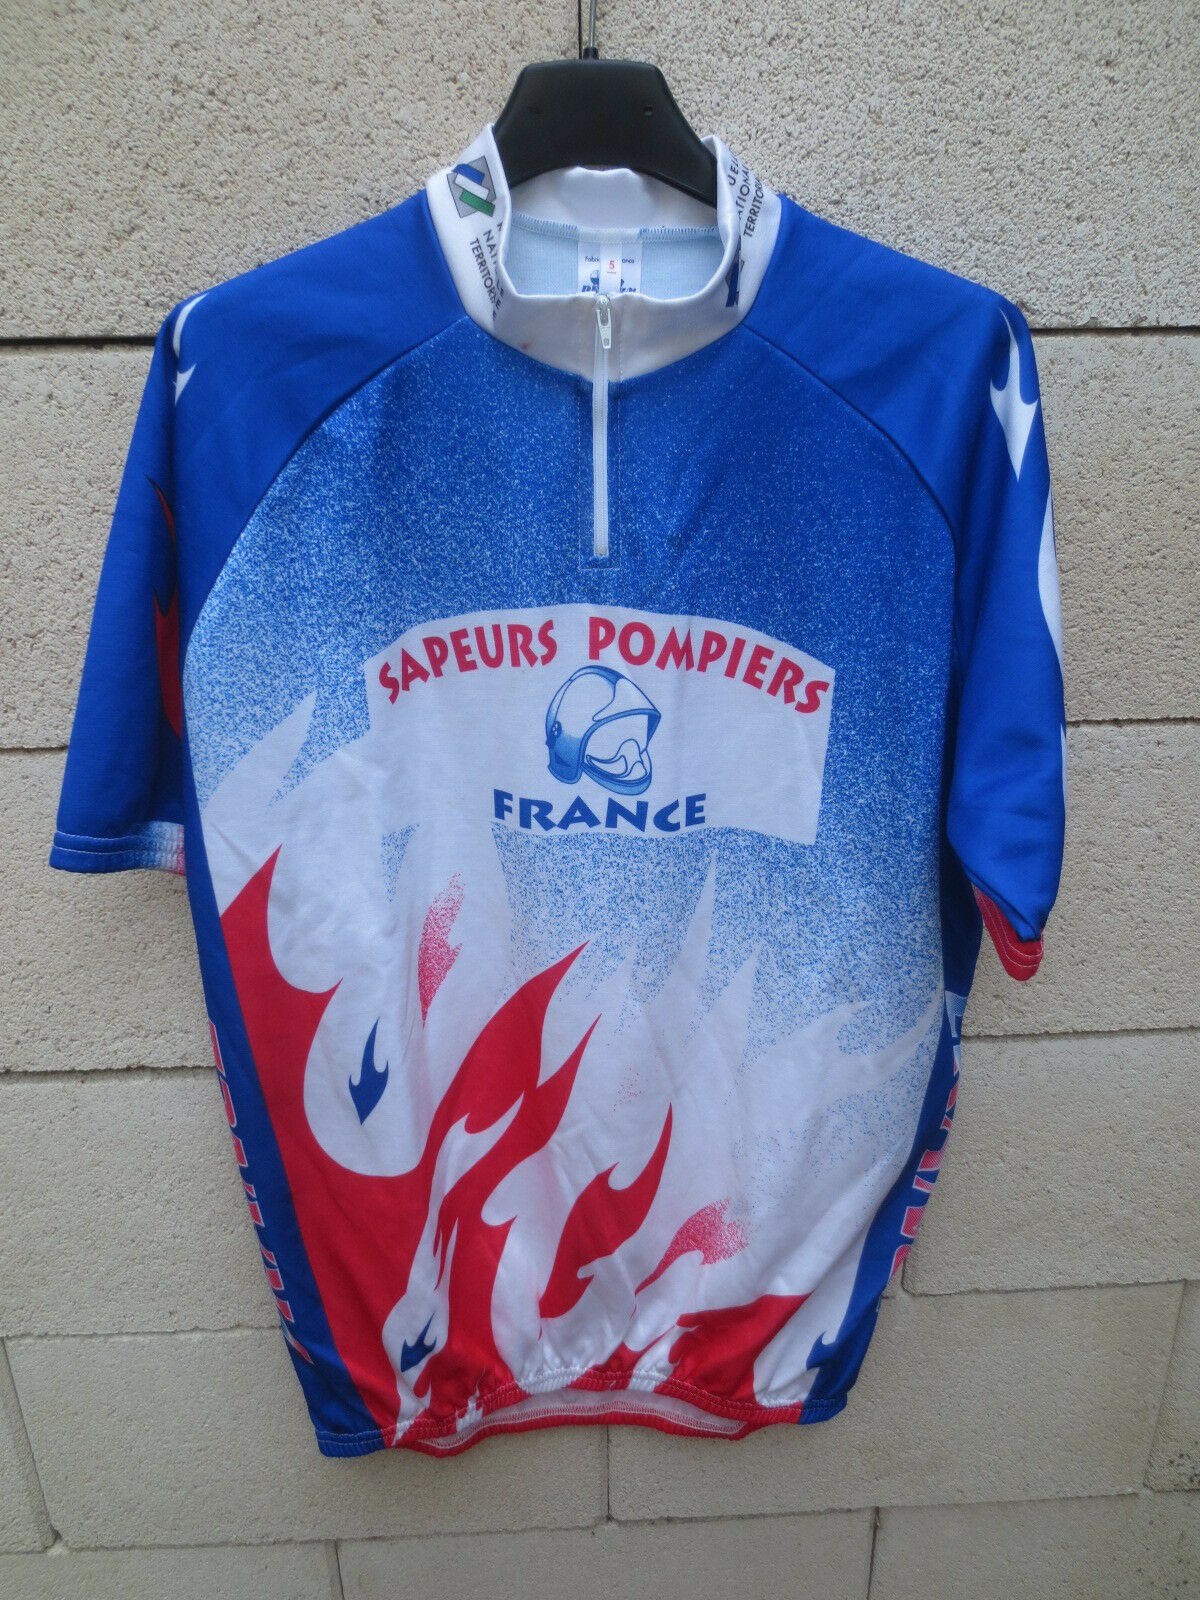 Maillot cycliste EQUIPE DE FRANCE SAPEURS POMPIERS shirt jersey collection 5 XL